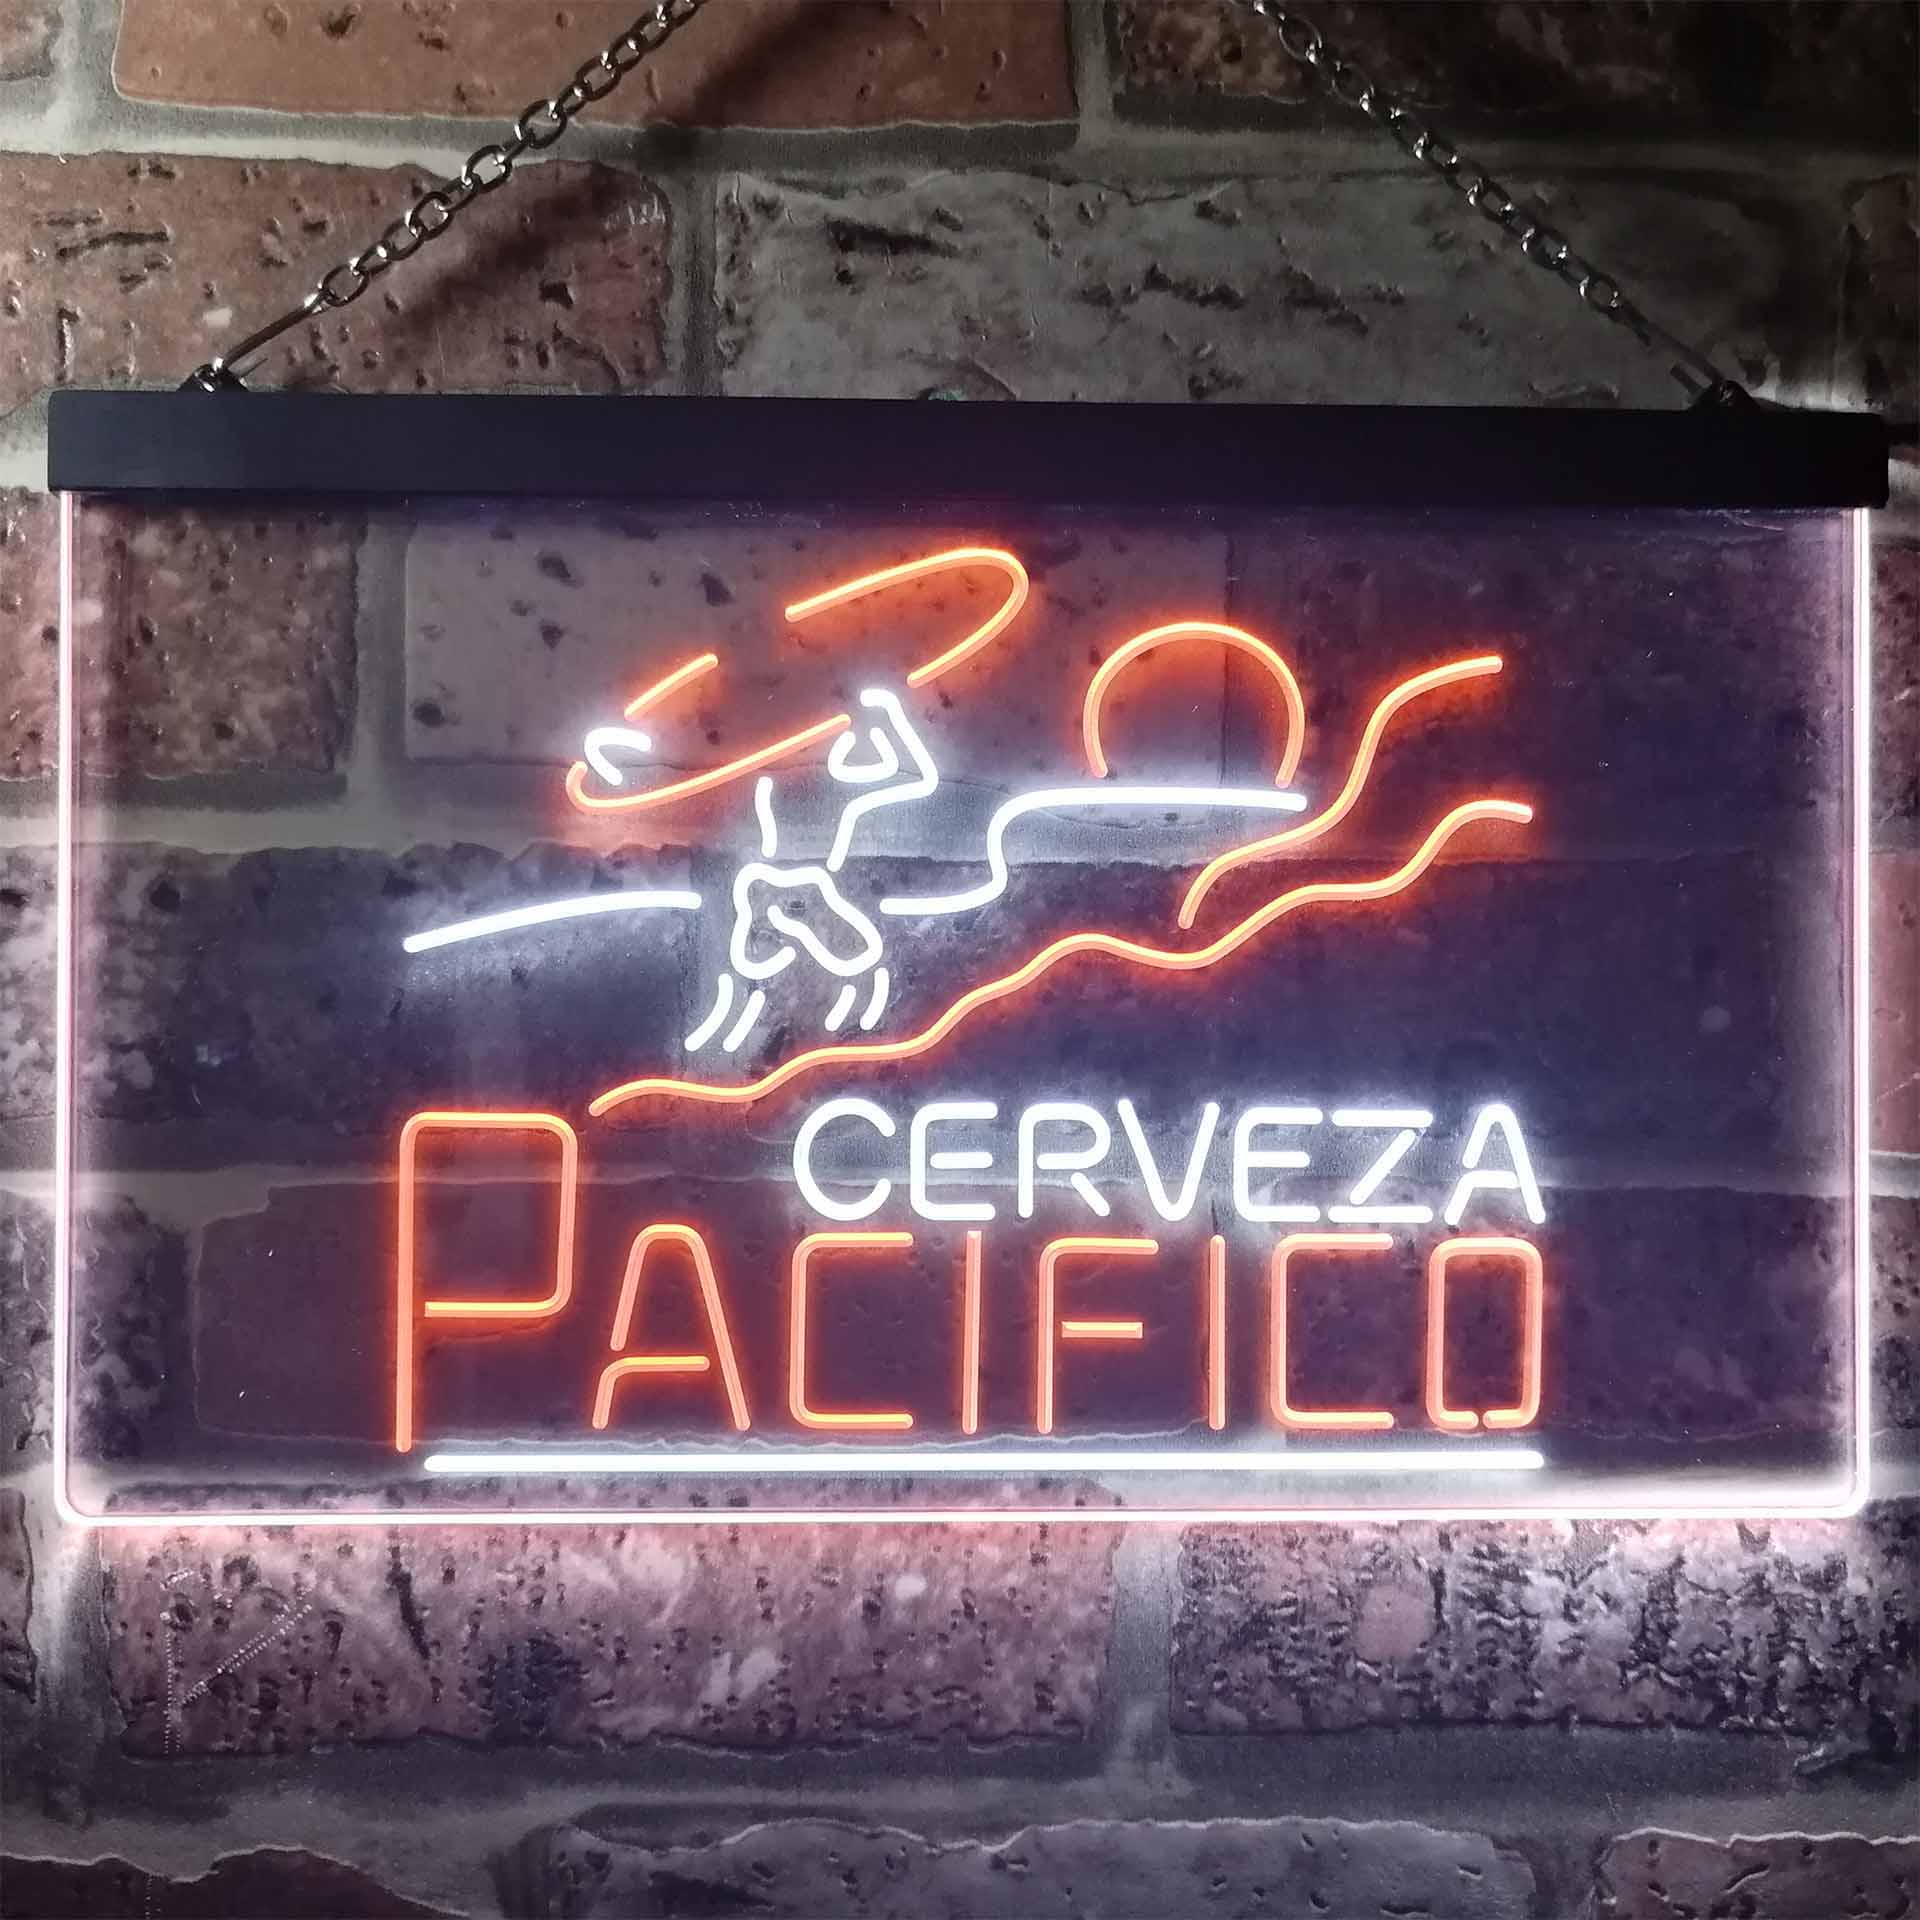 Pacifico Clara Mexican Cerveza Dual Color LED Neon Sign ProLedSign